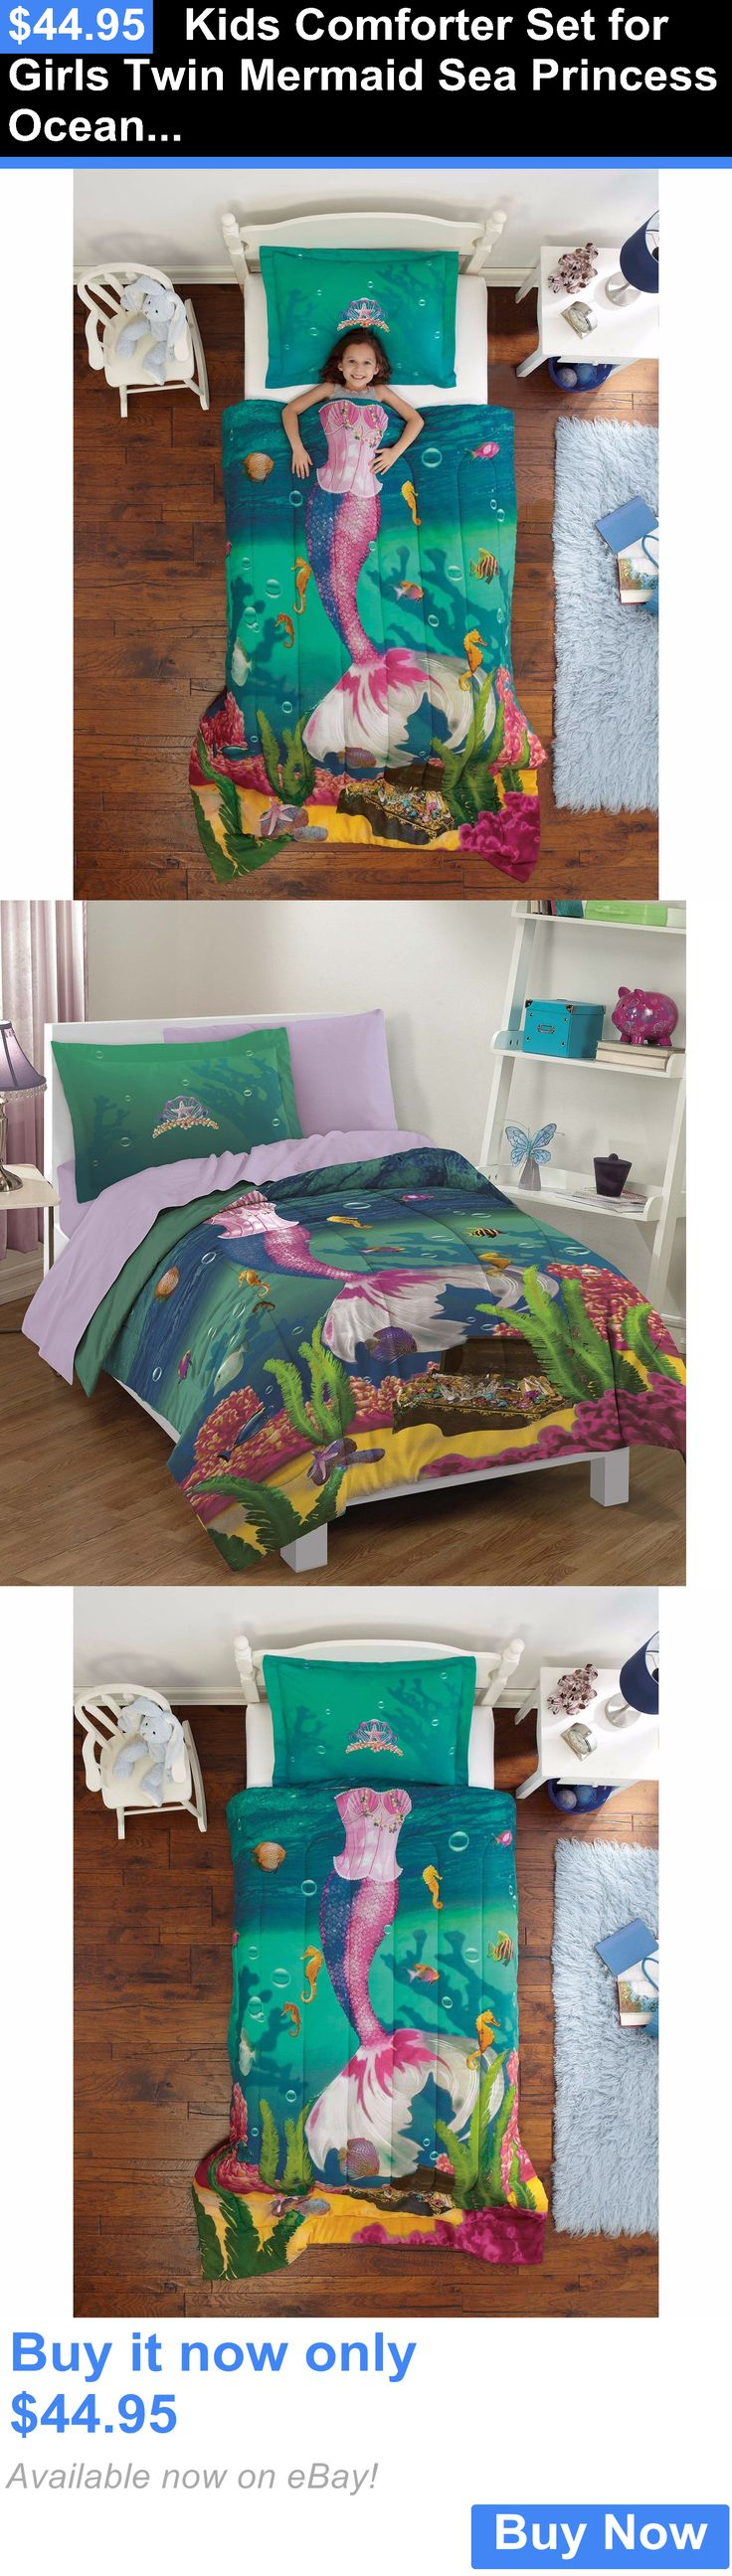 Kids Bedding: Kids Comforter Set For Girls Twin Mermaid Sea Princess Ocean Bed Bedding Sham BUY IT NOW ONLY: $44.95